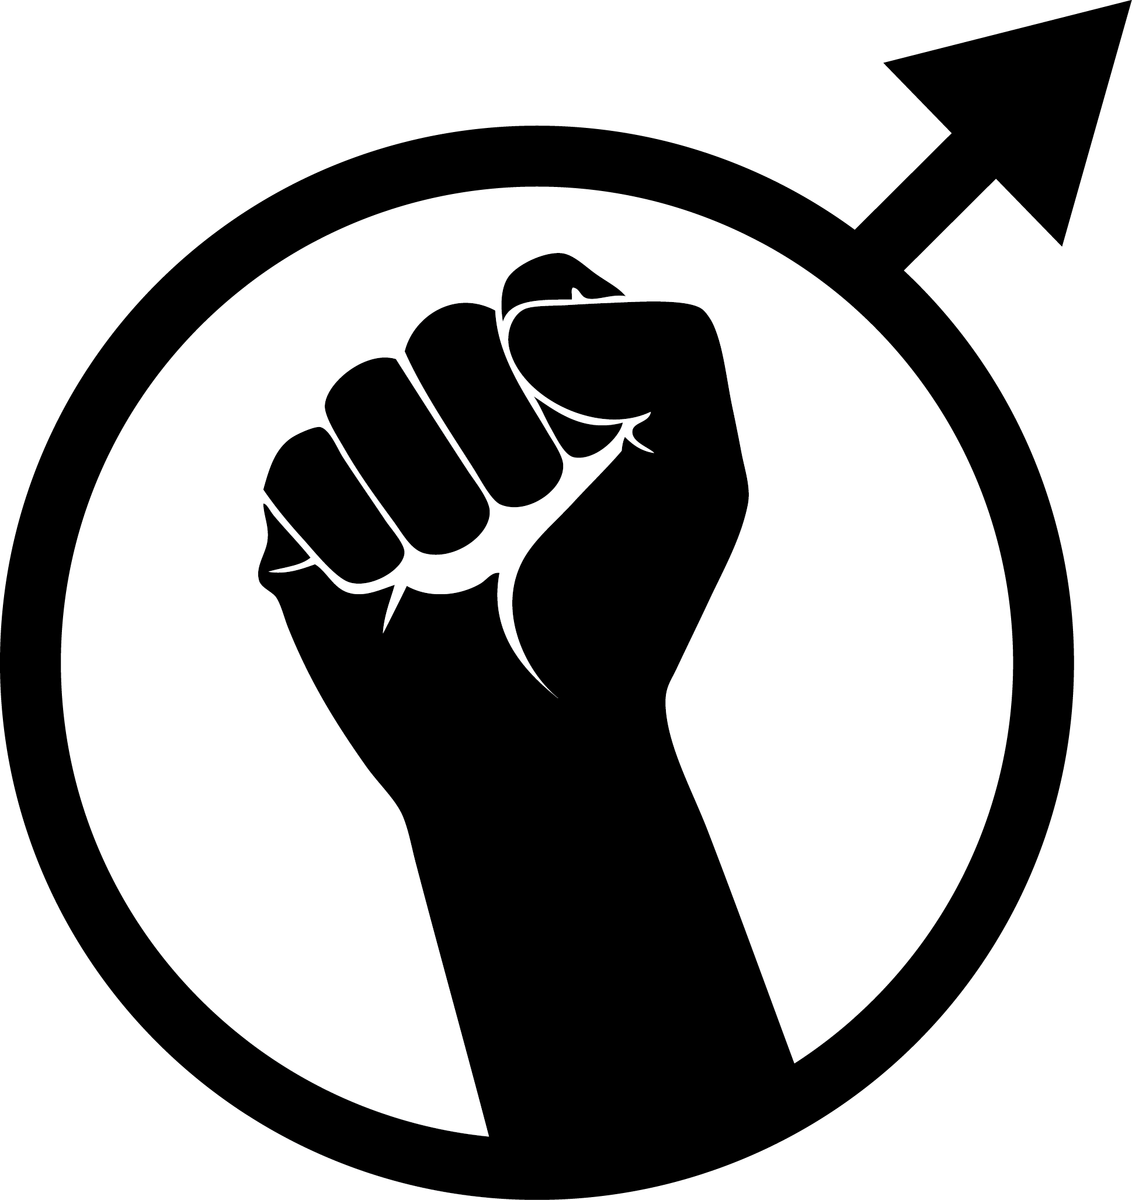 Symbol of the Men's Rights Movement.